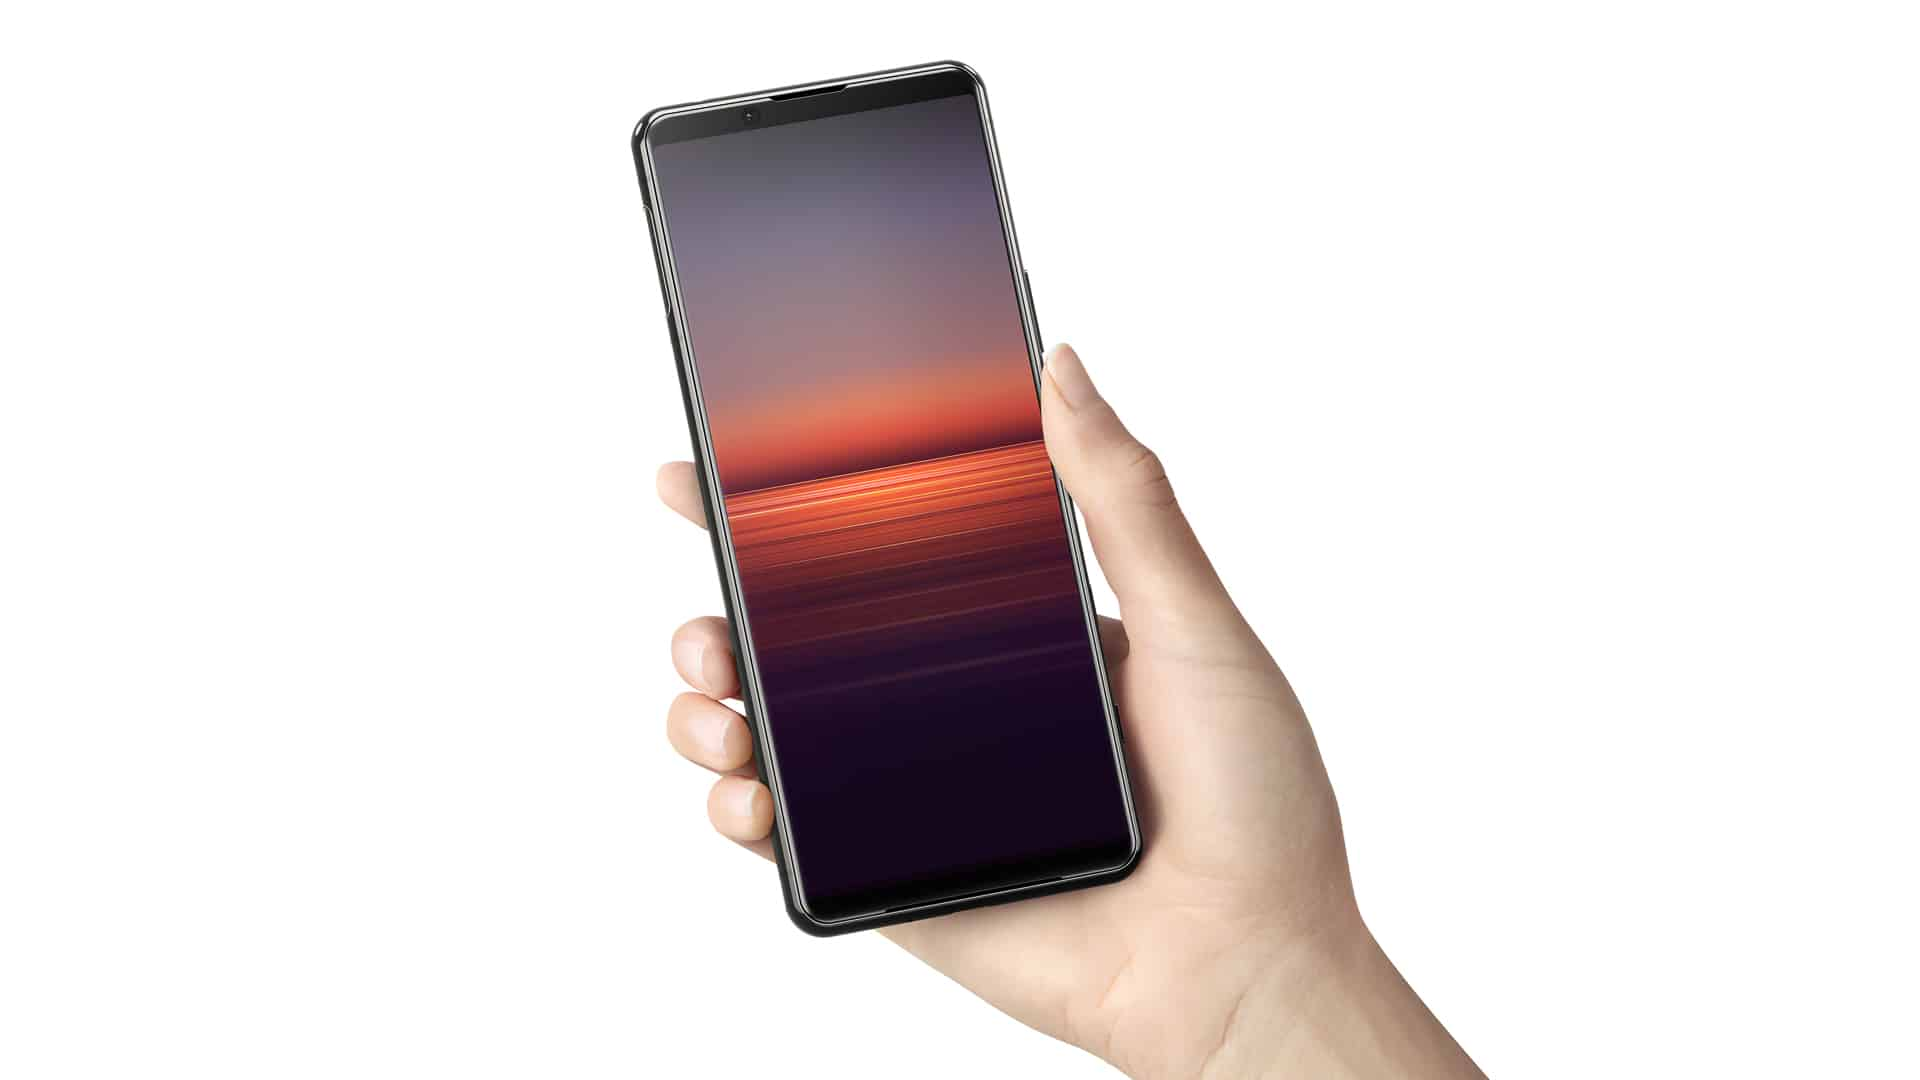 Xperia 5 II in hand viewing one hand